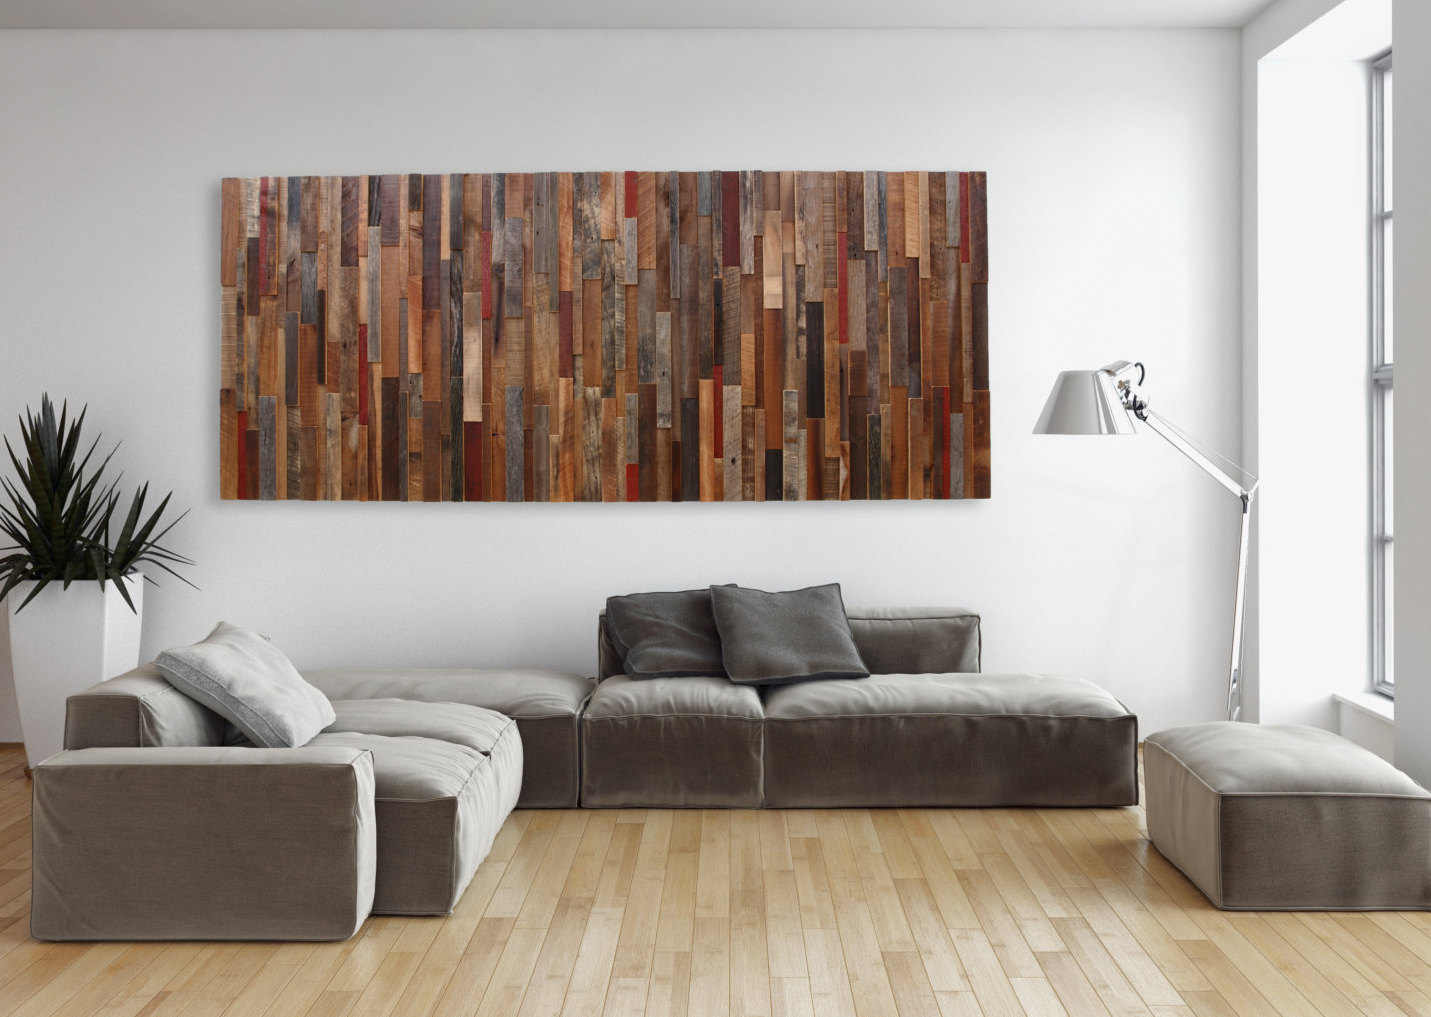 Image of: Large Wall Decor Ideas Living